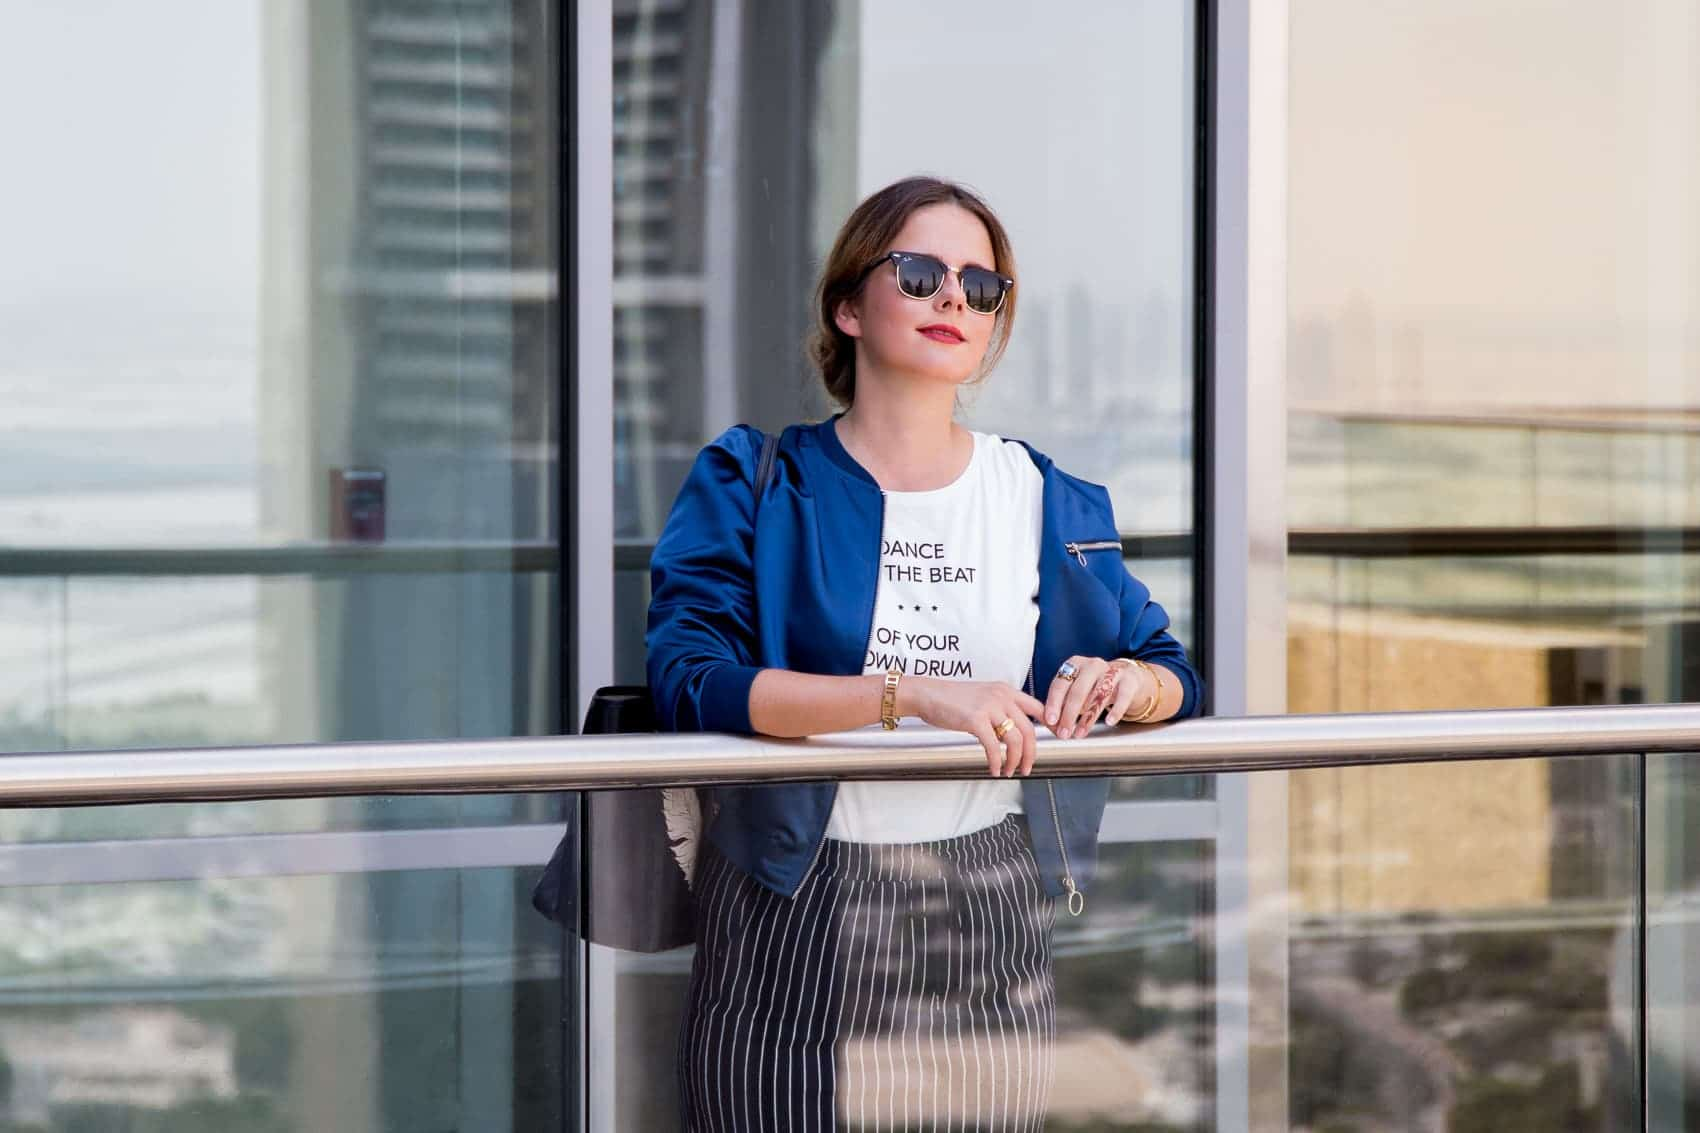 Sightseeing in Dubai - CKS Fashion Bomberjacke, Print-Shirt und Mules